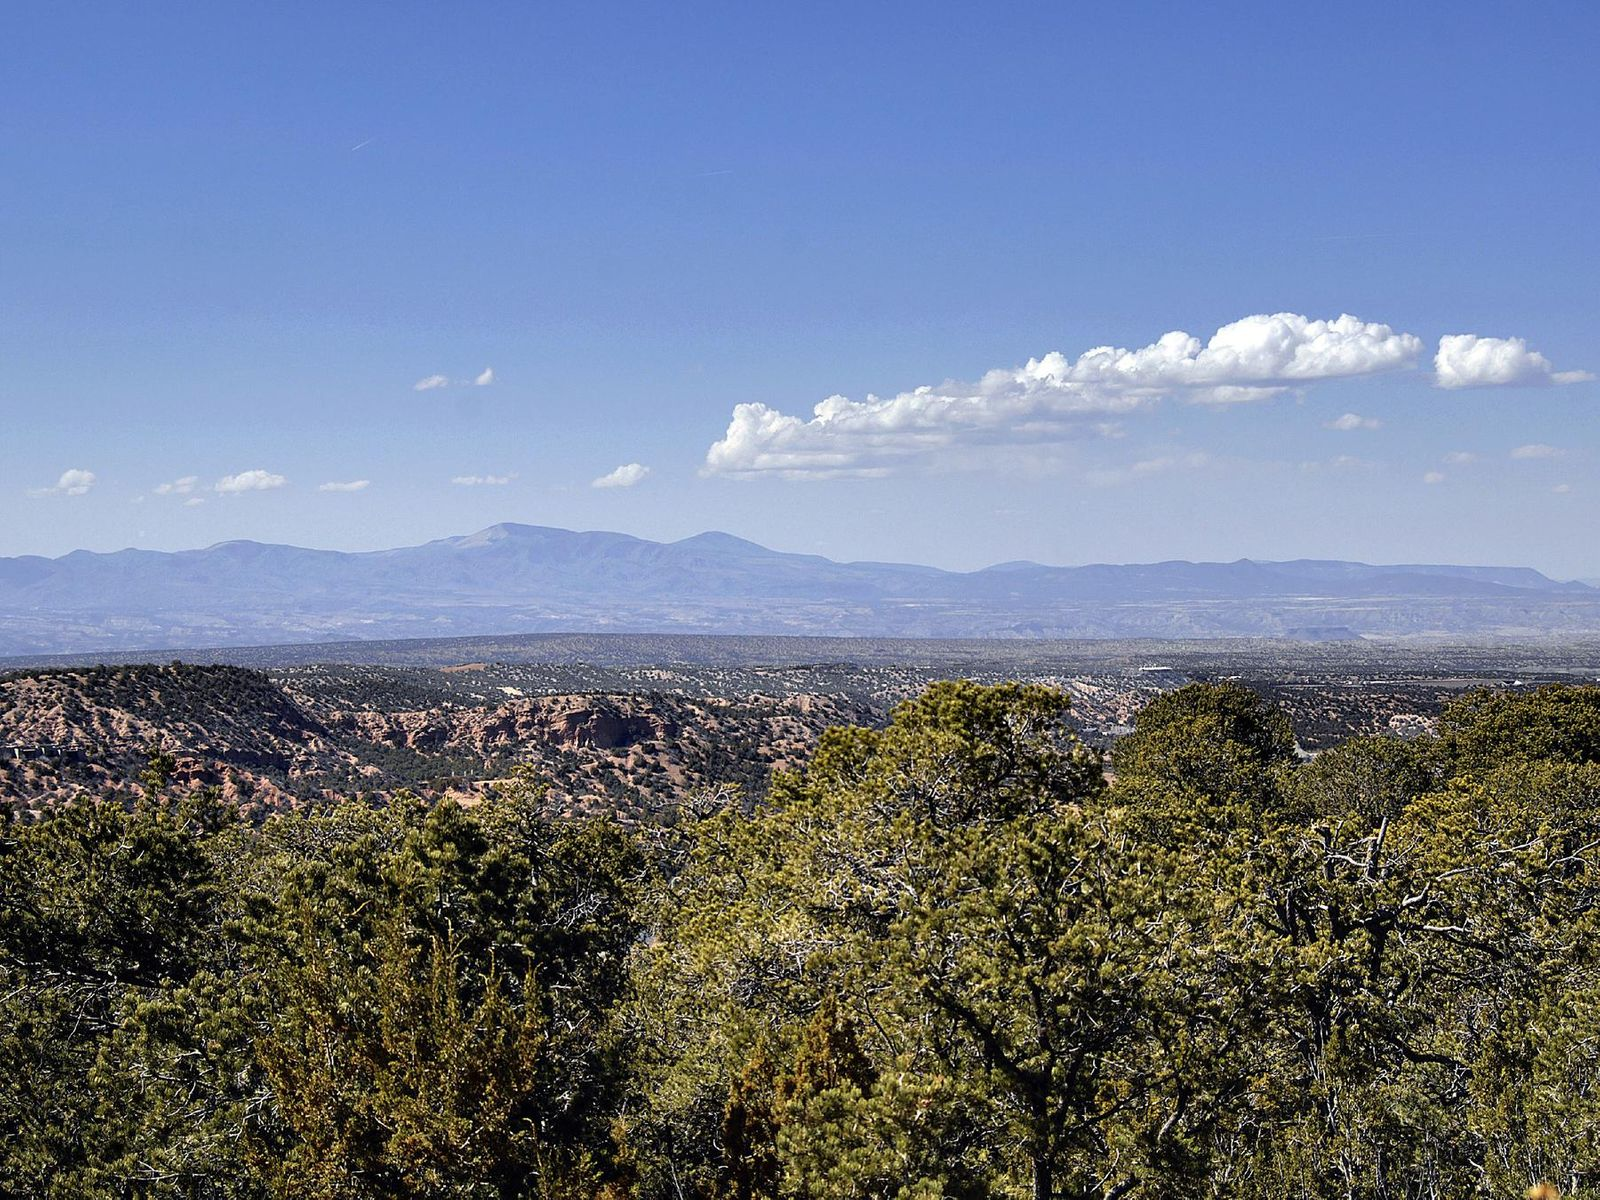 View of Jemez Mountains